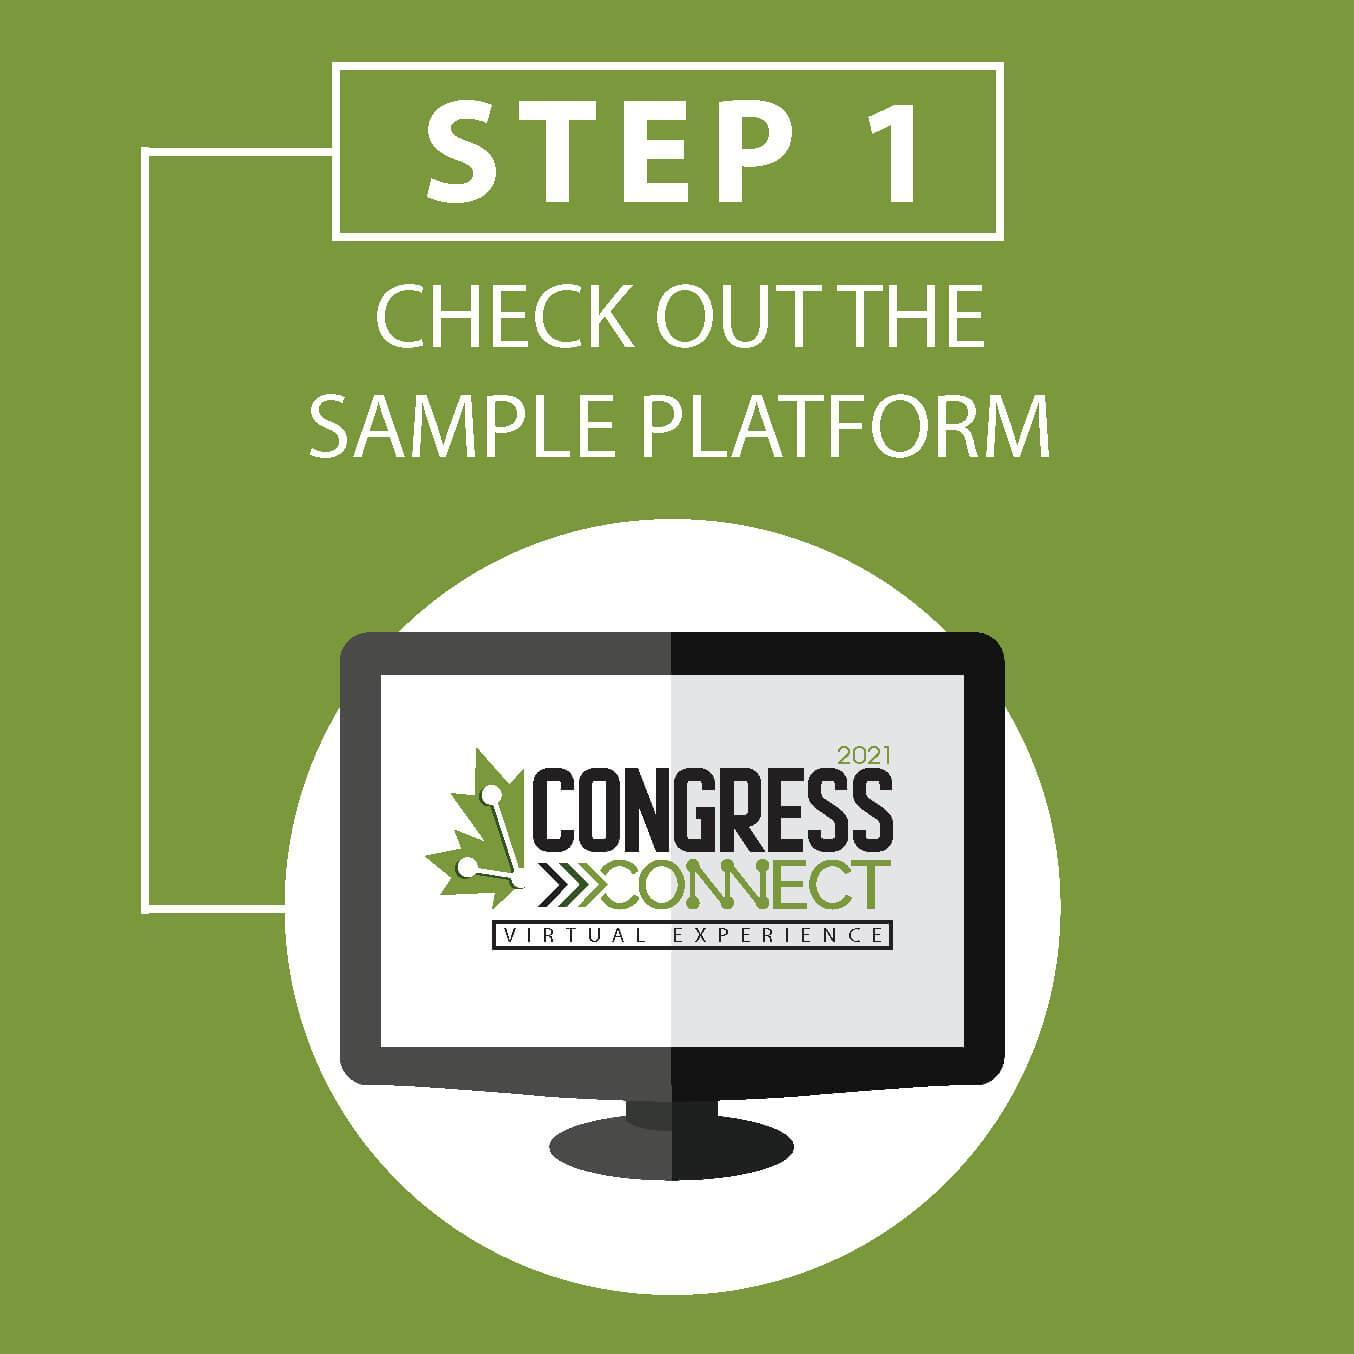 Step 1: Check out the Sample Platform